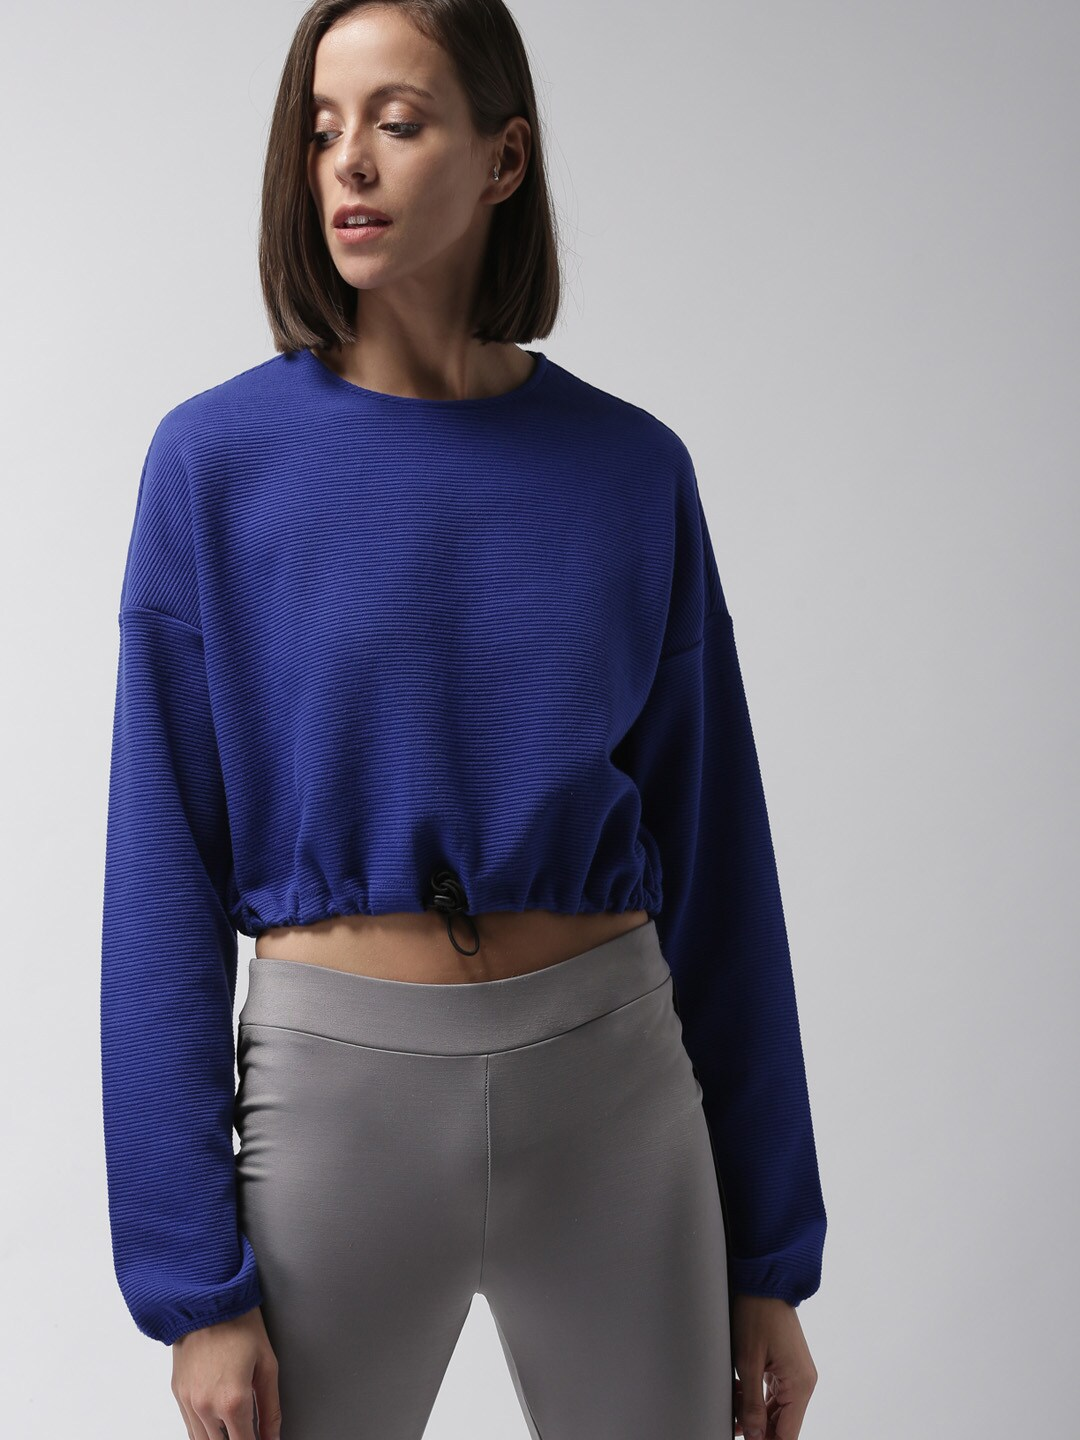 105536f9dd45 Ladies Tops - Buy Tops   T-shirts for Women Online